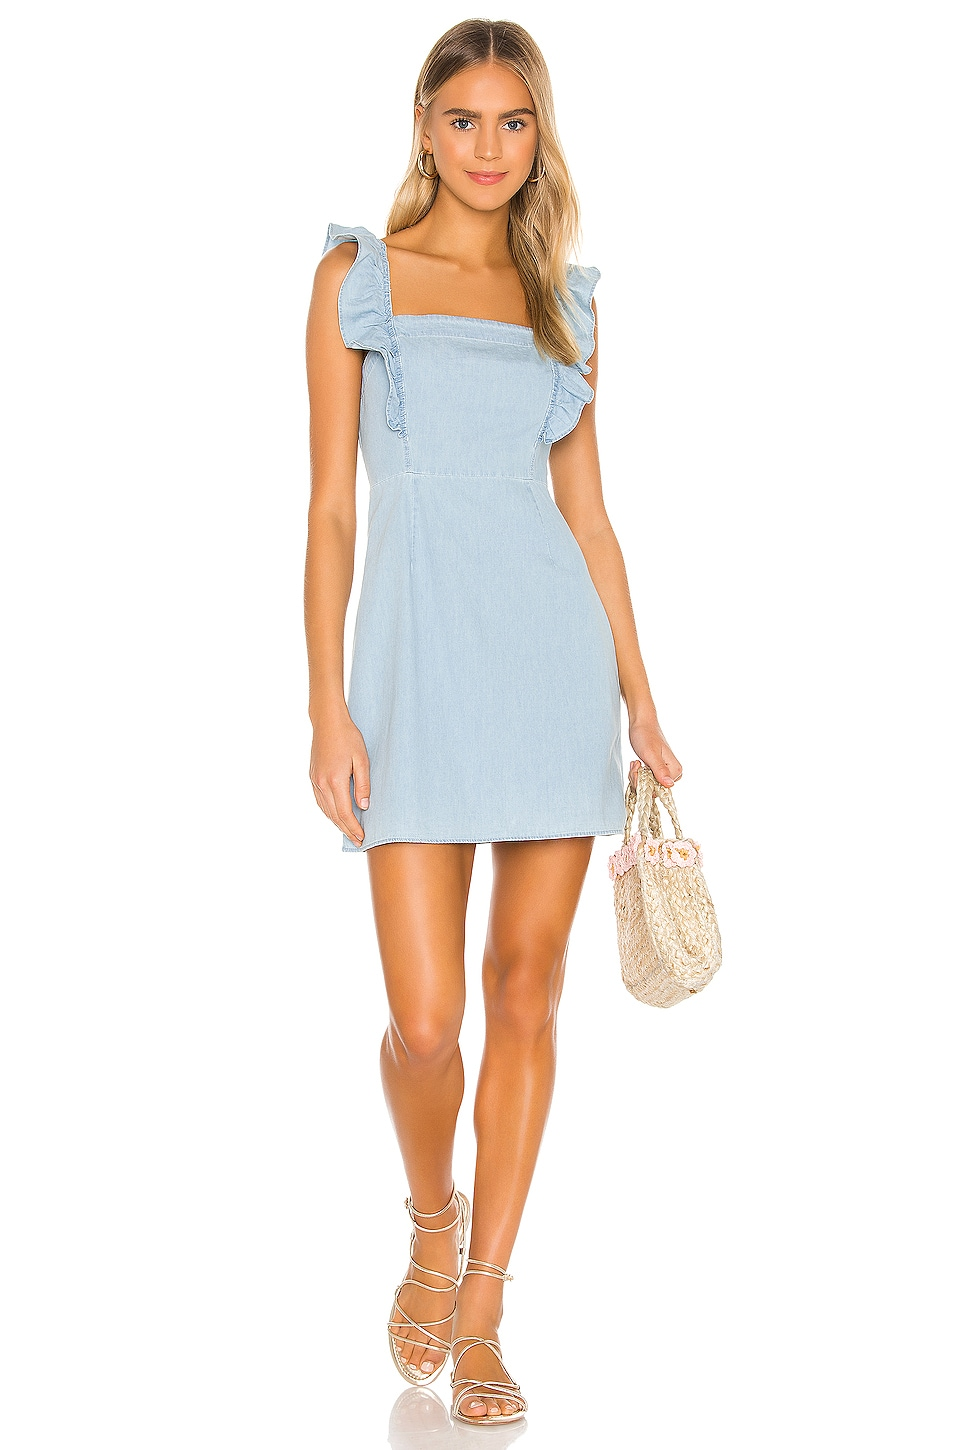 JACK by BB Dakota Chambray All Day Dress             BB Dakota                                                                                                       CA$ 108.89 13